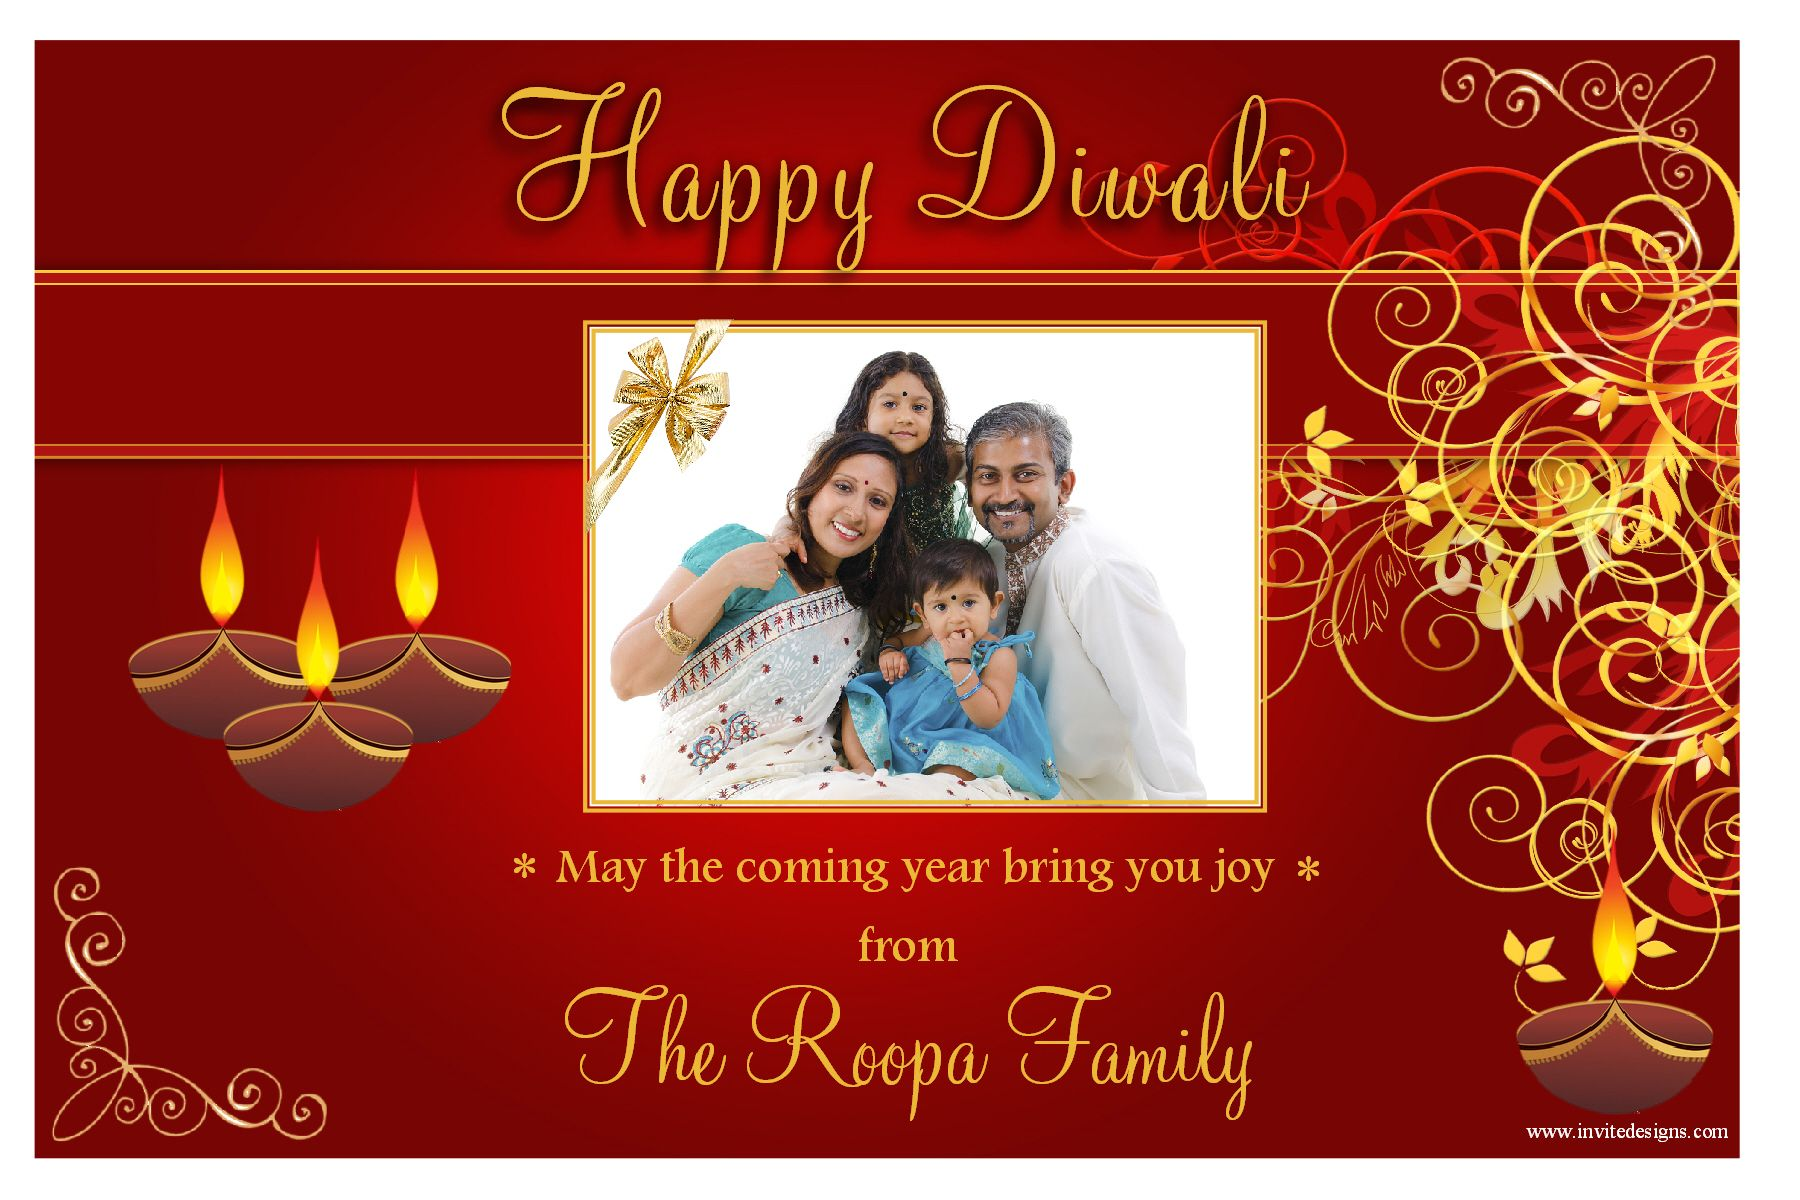 10 personalised diwali devali celebration new year photo cards n3 kristyandbryce Gallery